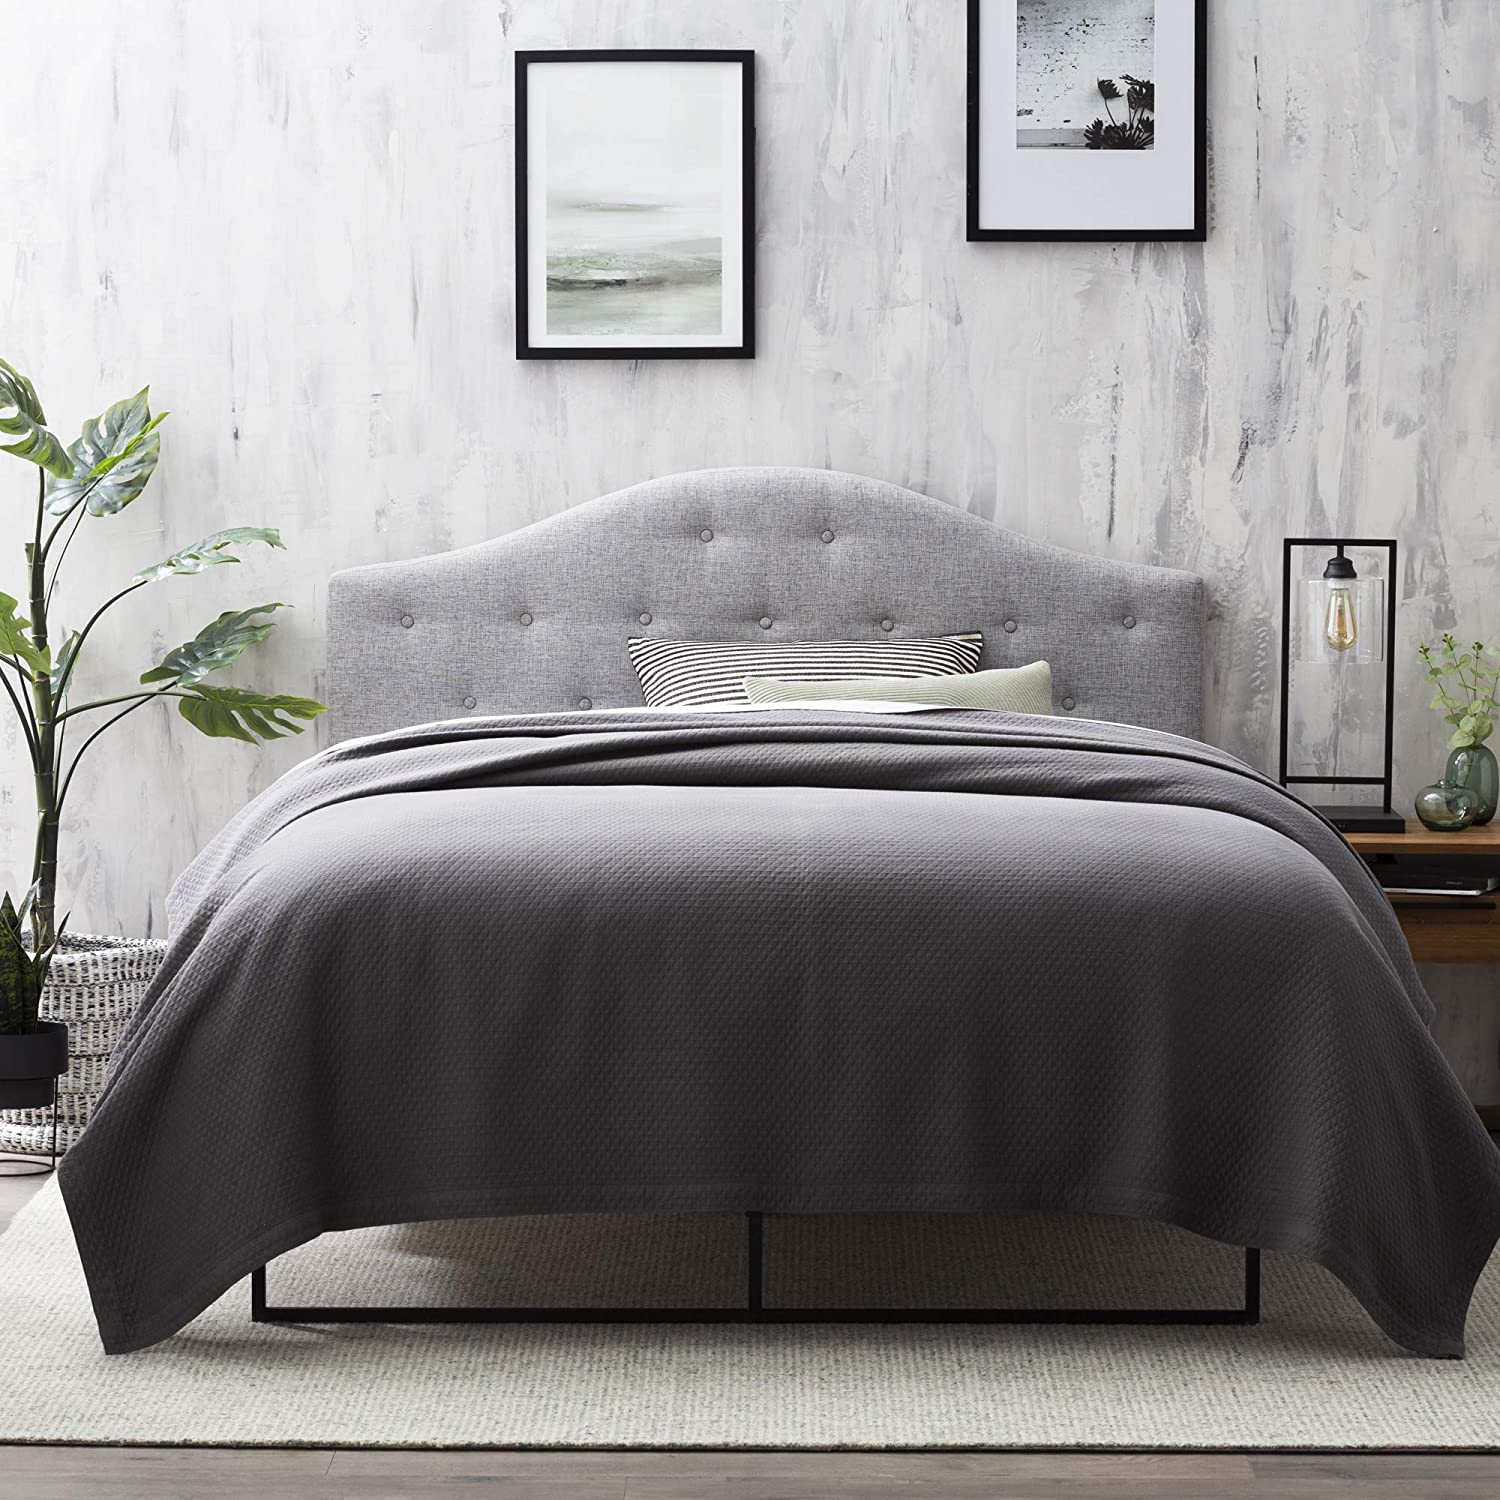 Everlane Home Legrand Upholstered Arched Headboard with Button Tufting, Queen, Pebble